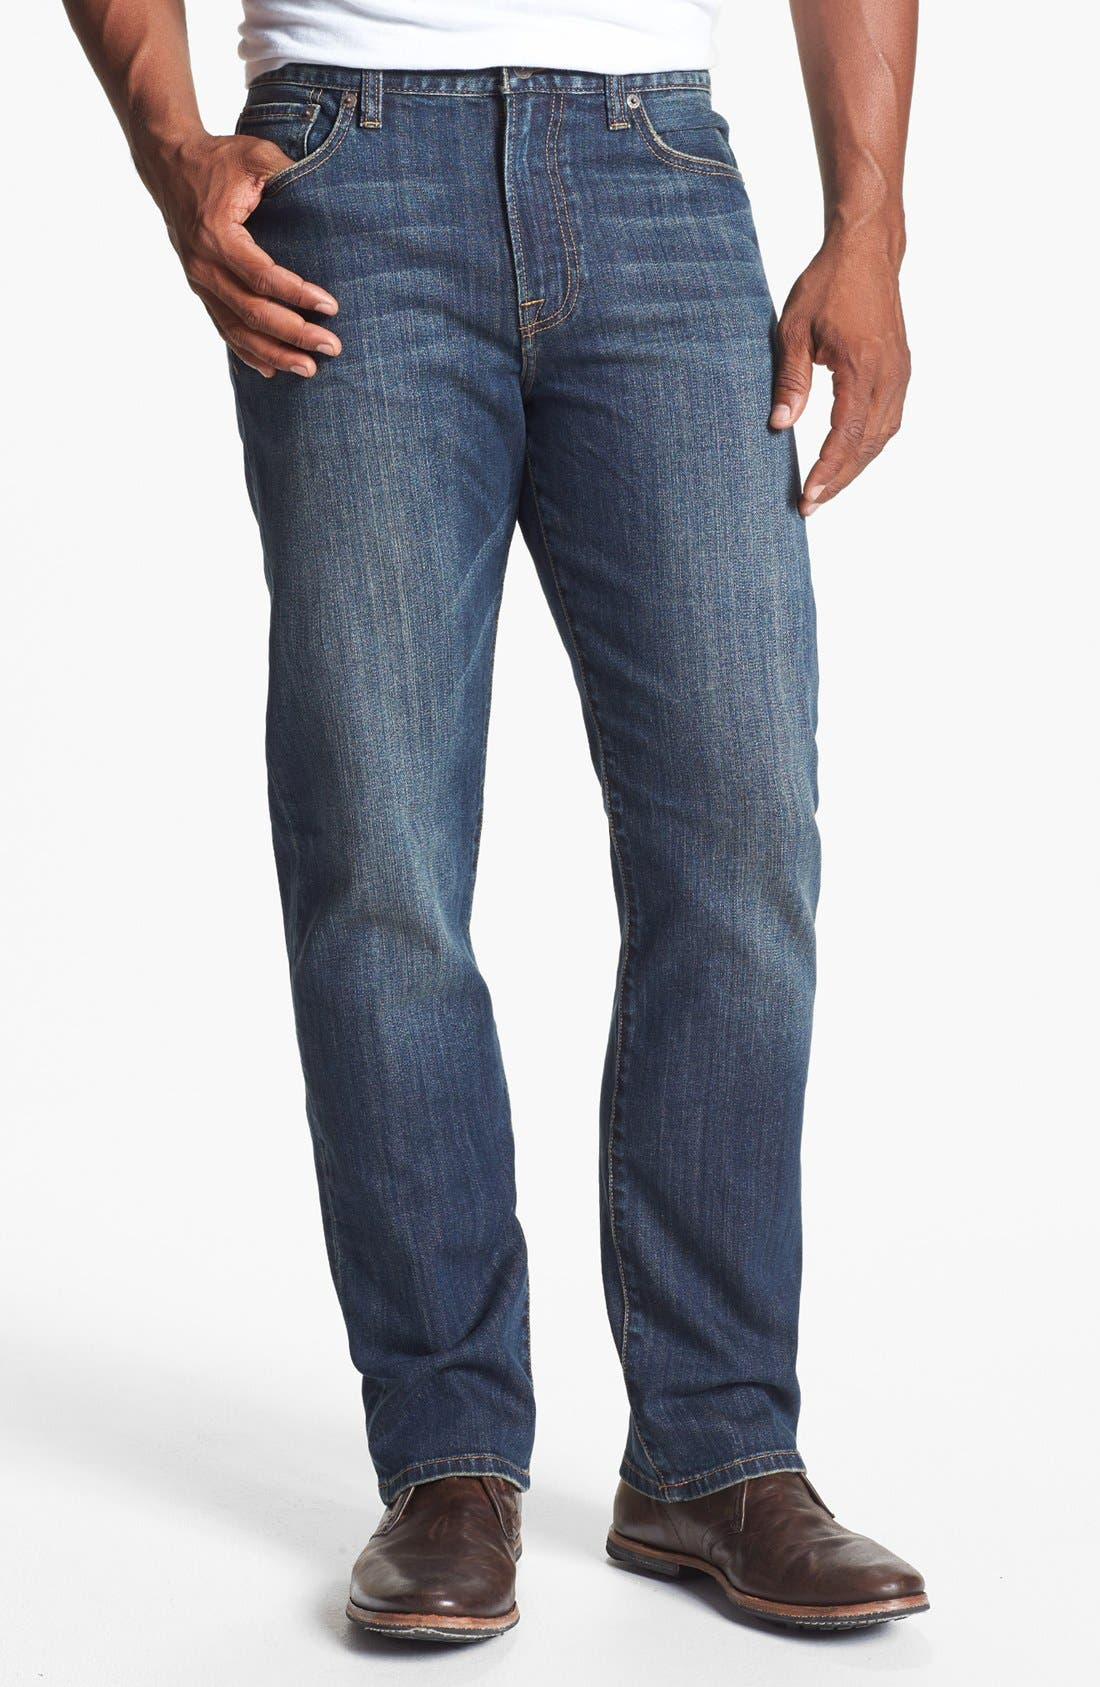 Alternate Image 1 Selected - Lucky Brand '329 Classic' Straight Leg Jeans (Glacier)